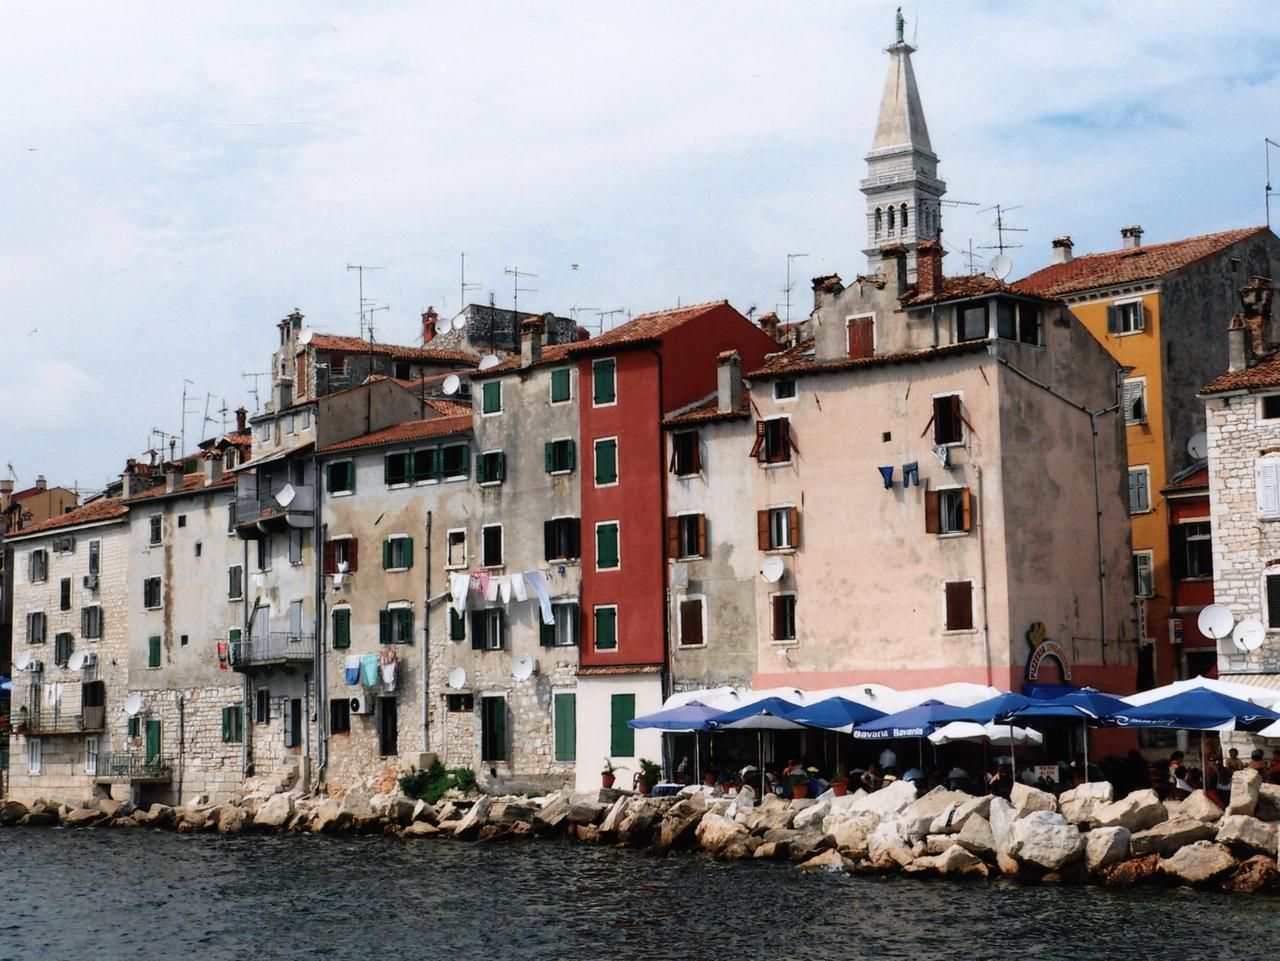 TRAVEL OLD PORT TOWN OF ROVINJ IN ISTRIA